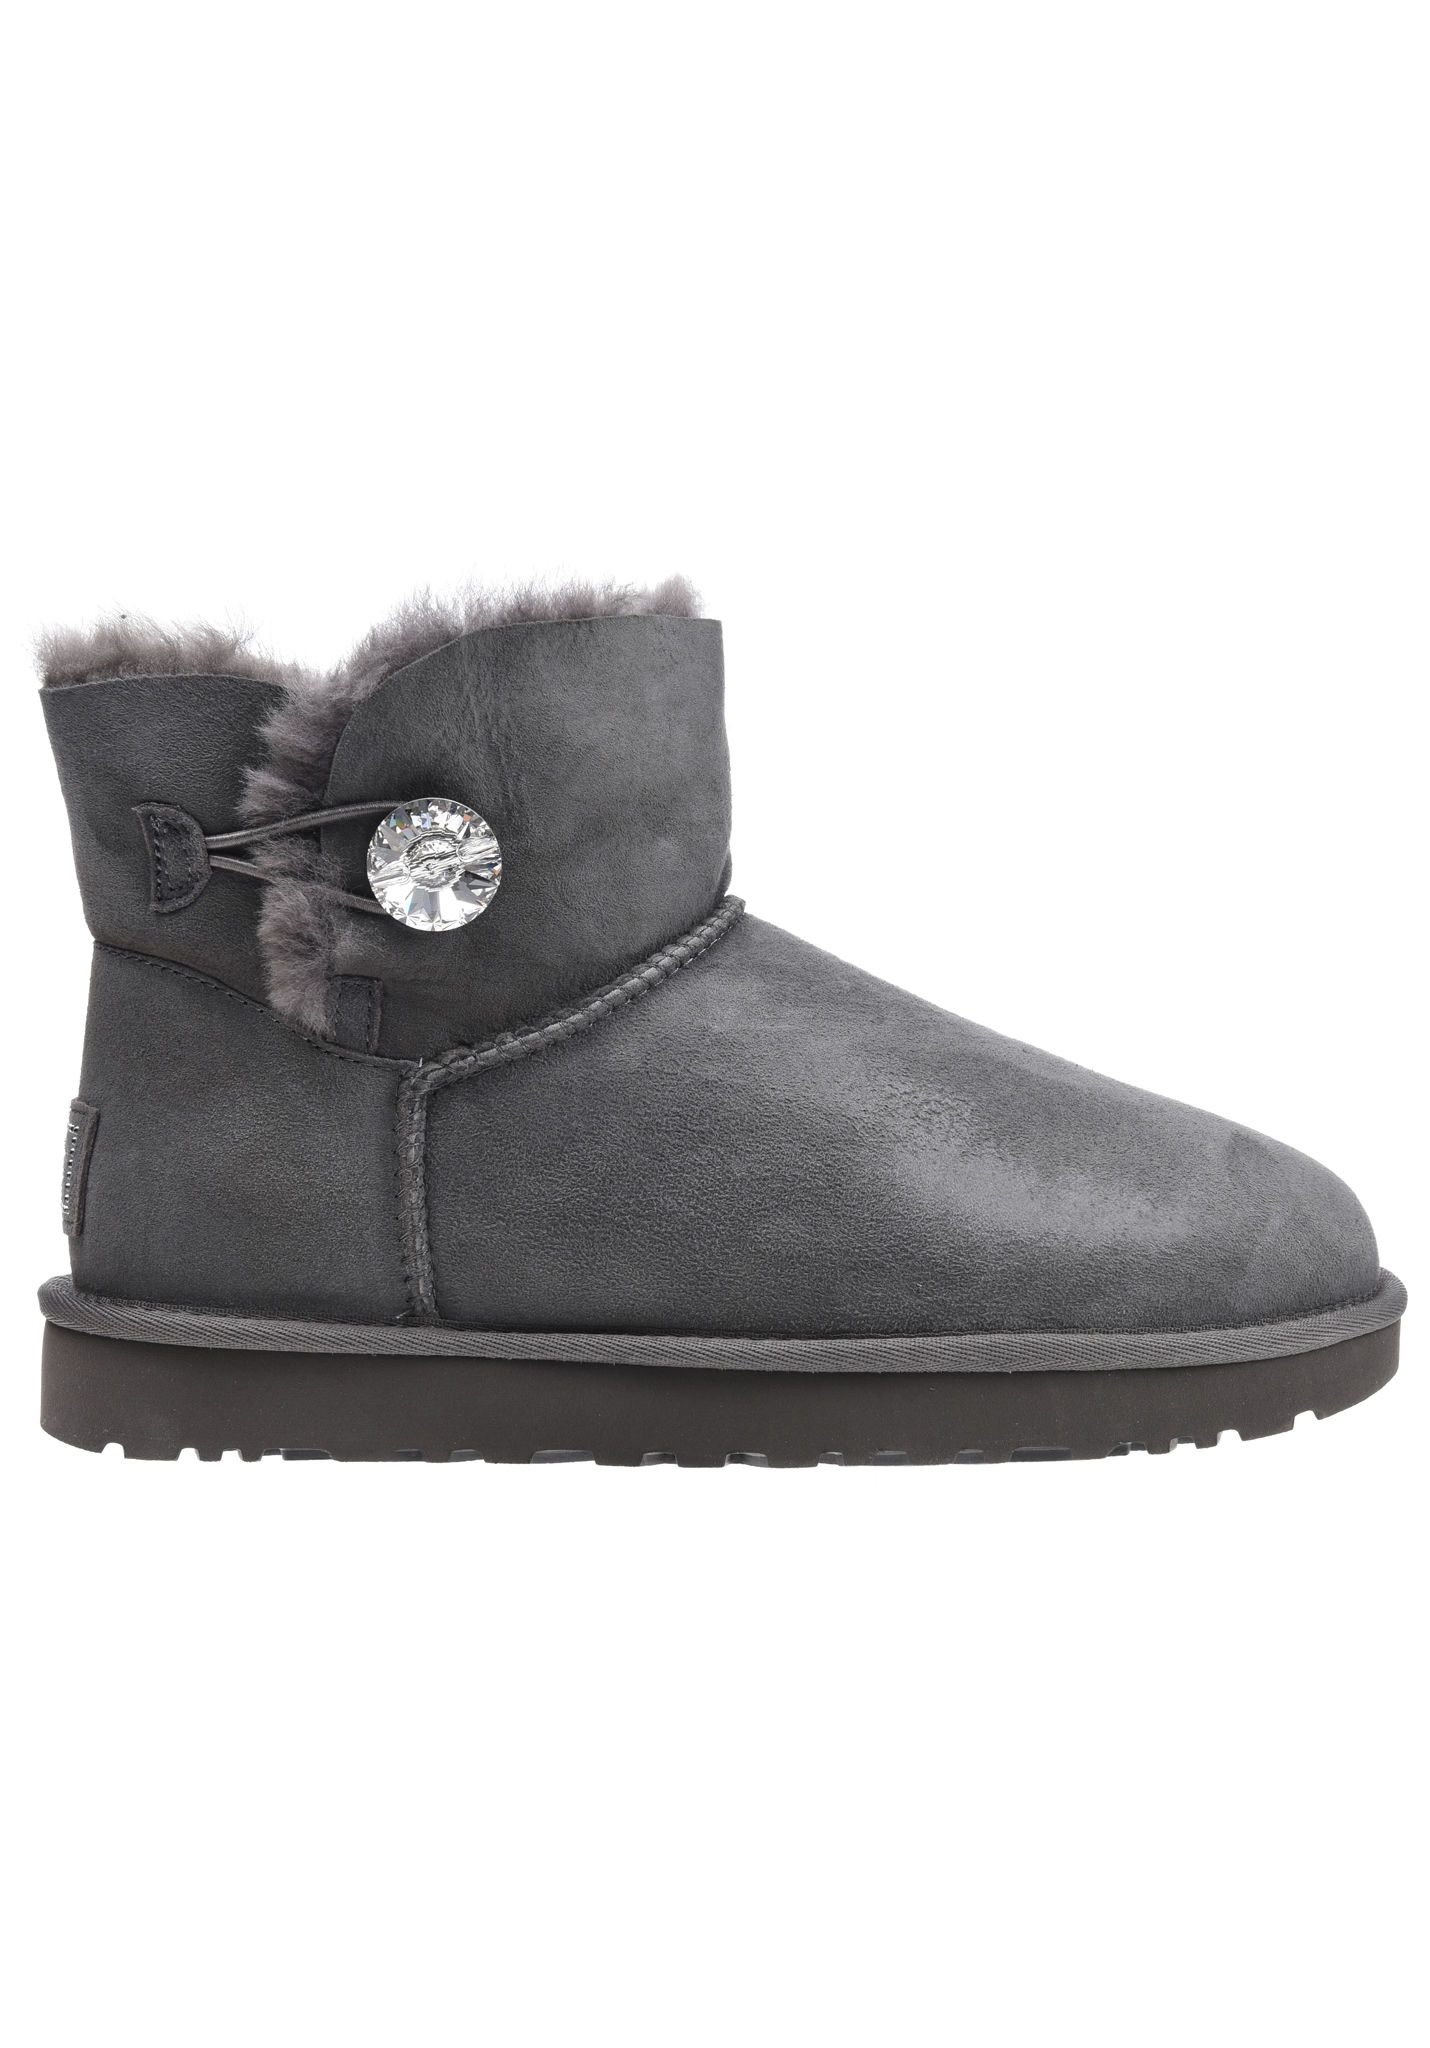 Ugg Mini Bailey Button Bling Grau